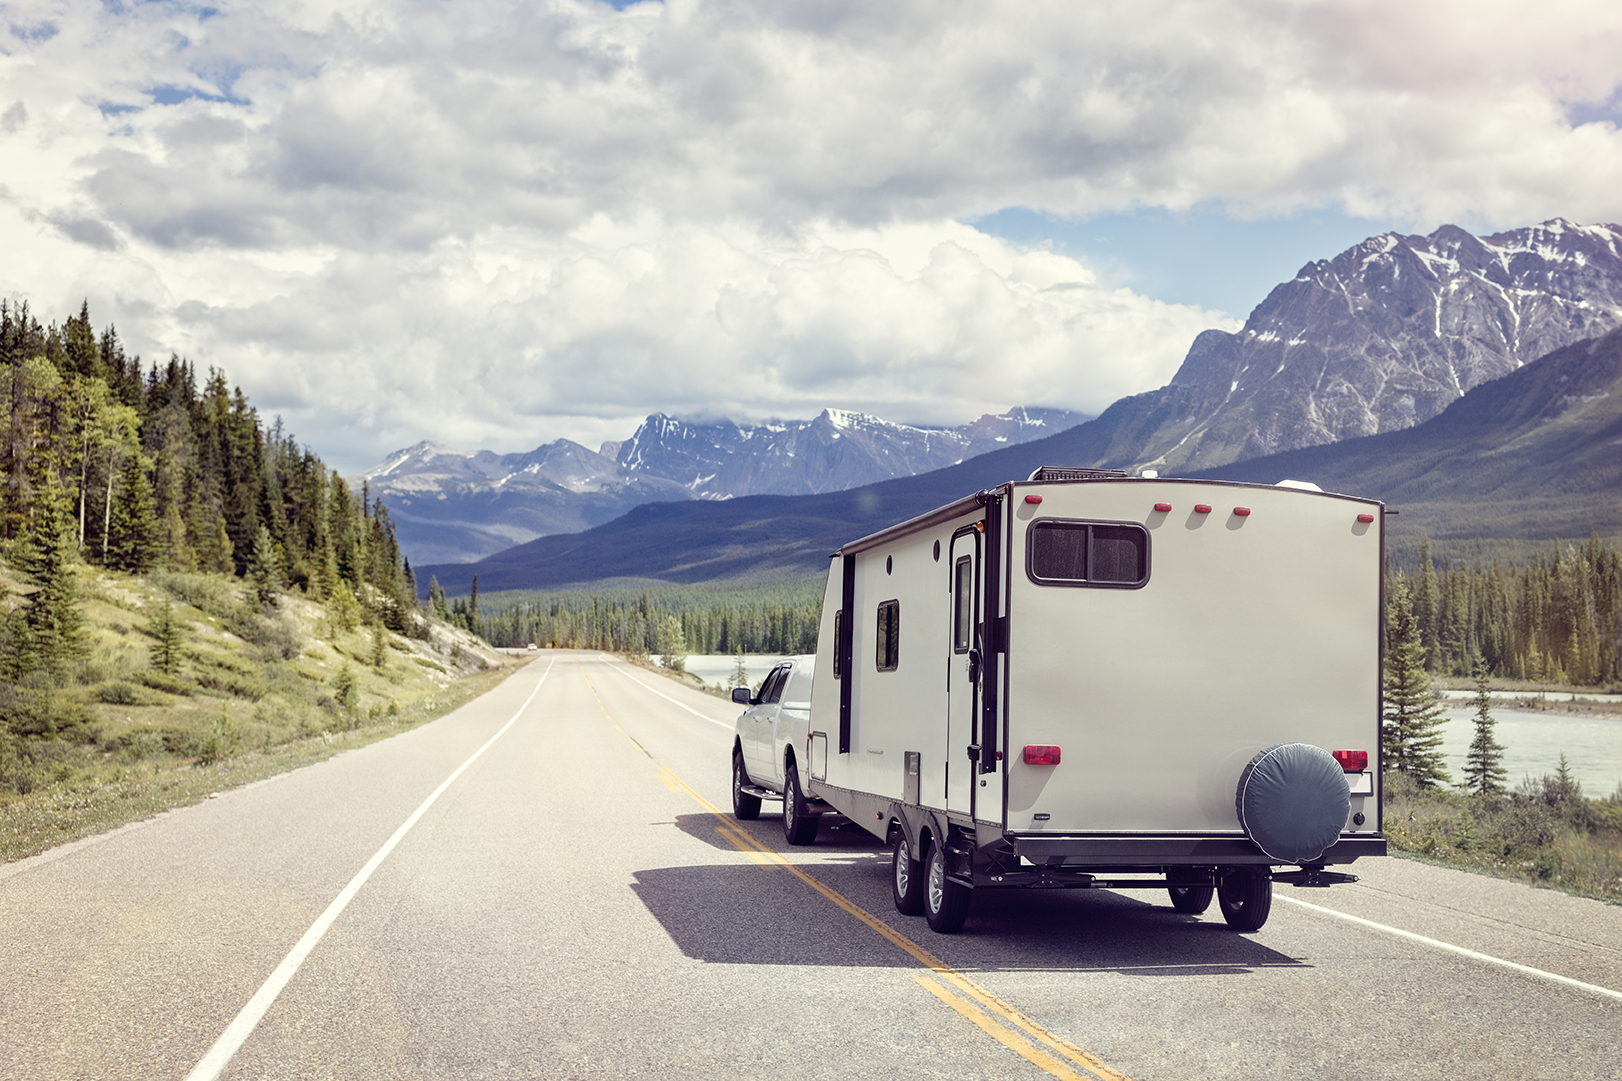 Learn your vehicles' tow ratings, GVWR and GCWR to determine how much weight you can tow